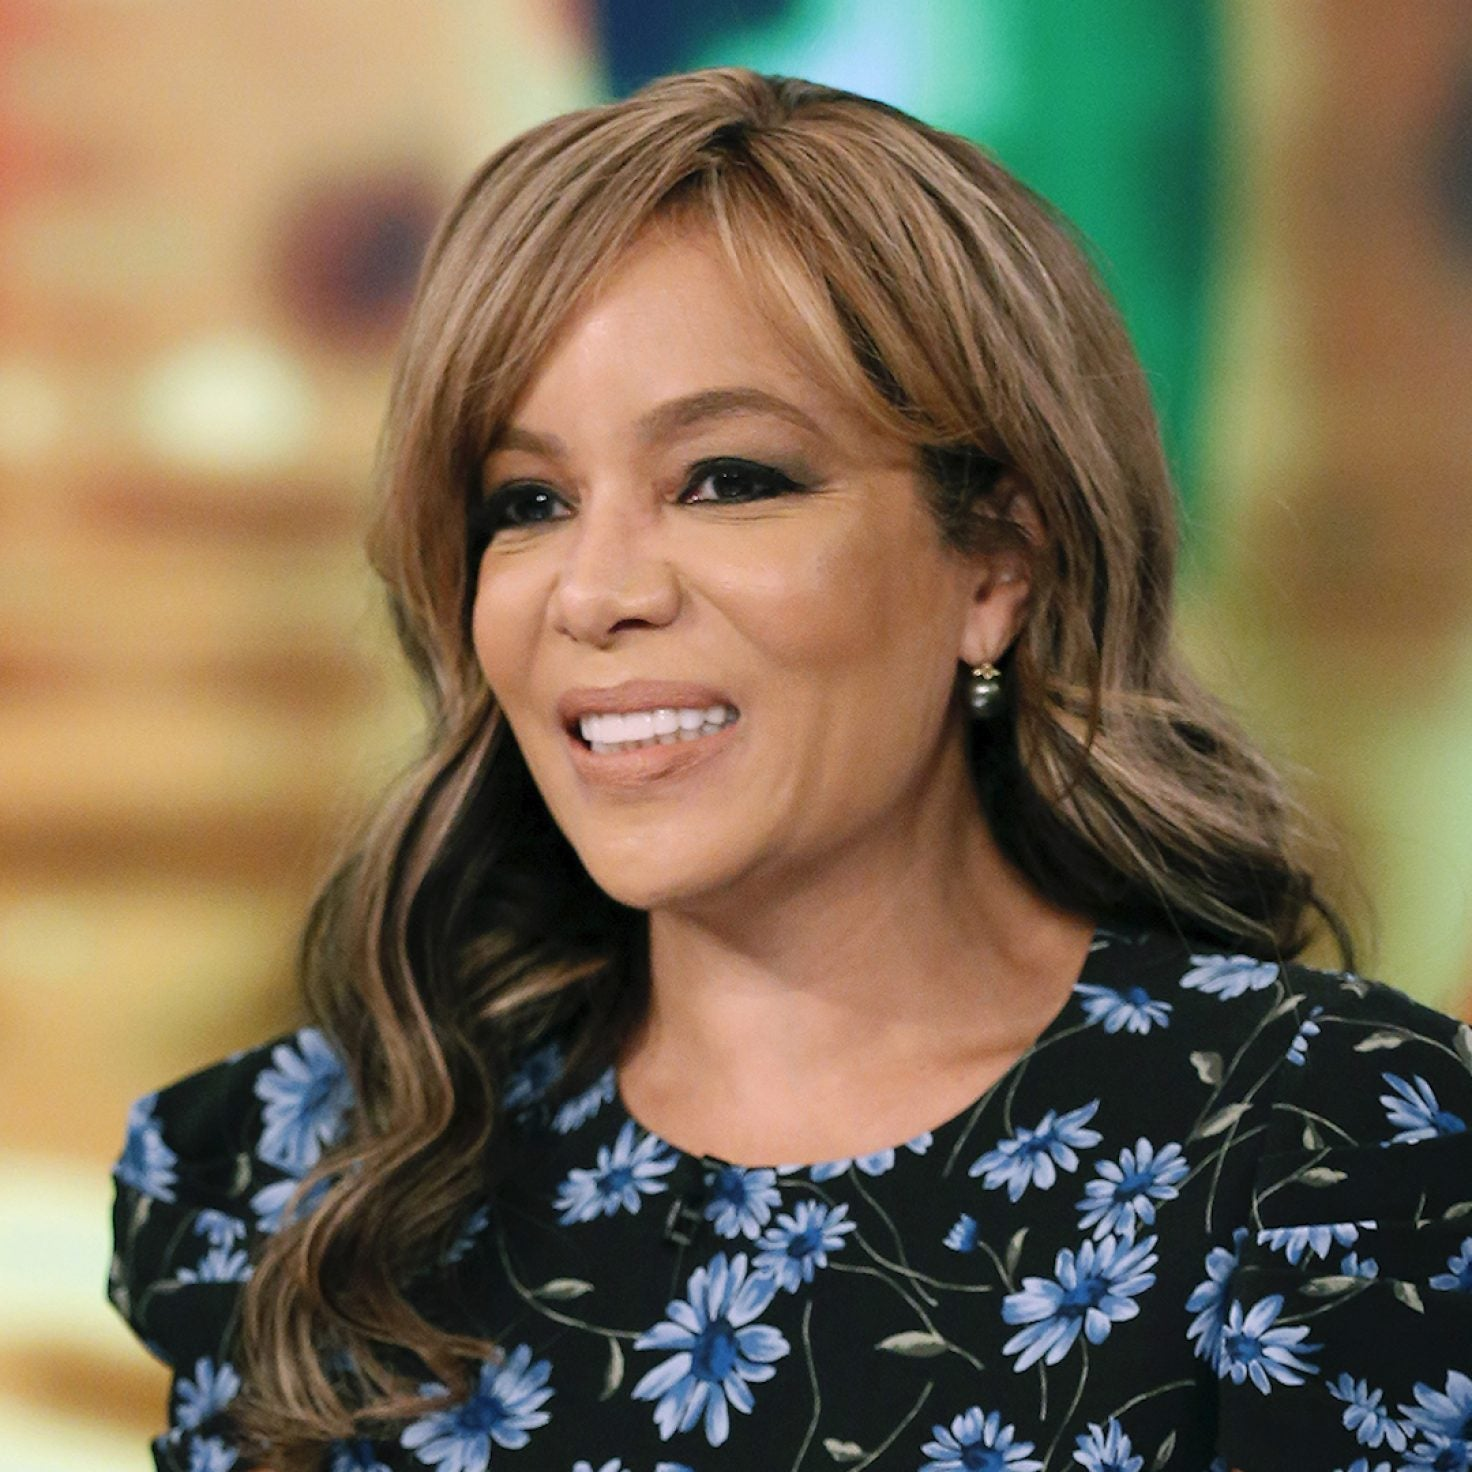 Sunny Hostin Says She Was 'Saddened And Hurt' To Learn Of ABC News Exec's Racist Remarks